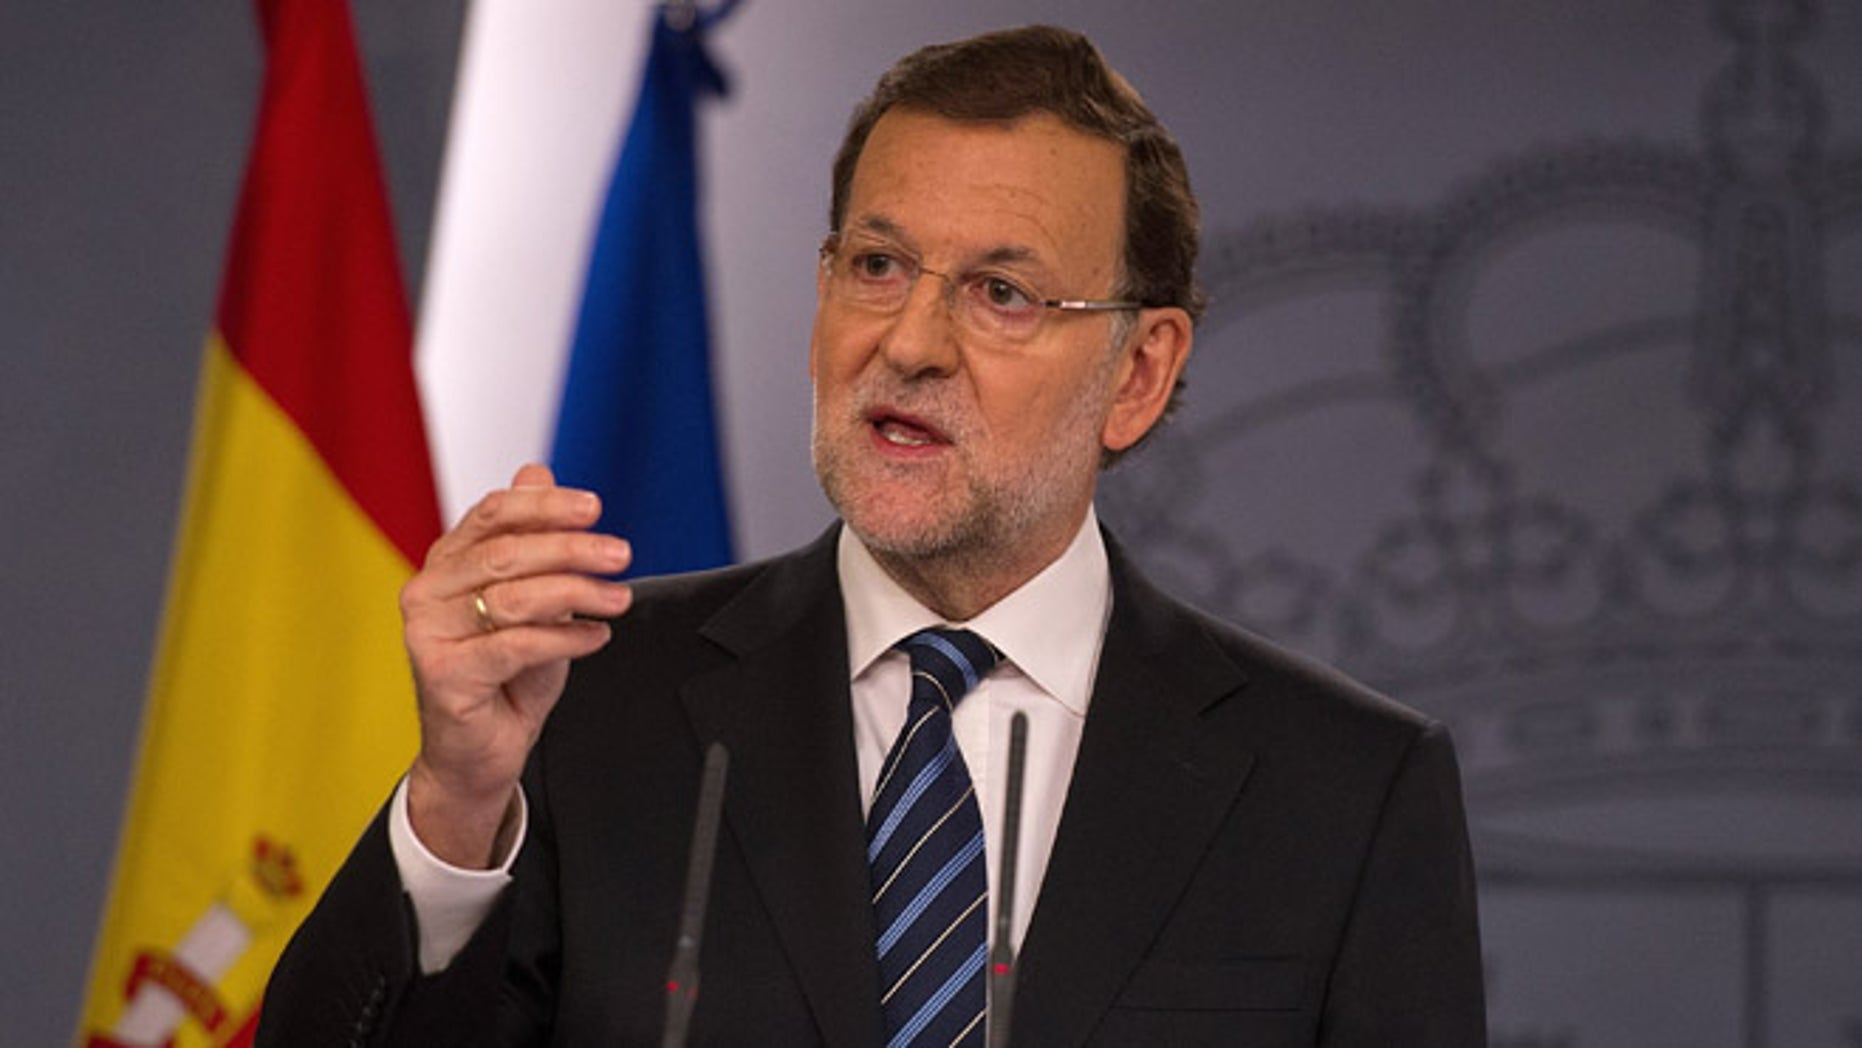 MADRID, SPAIN - NOVEMBER 12:  Spanish Prime Minister Mariano Rajoy speaks about the recent unofficial Catalonian independence poll during a press conference at the Moncloa palace on November 12, 2014 in Madrid, Spain.  An estimated 2 million Catalans voted on November 9th to separate from Spain in the unofficial poll after the Spanish state blocked in courts a more legally binding referendum.  (Photo by Denis Doyle/Getty Images)